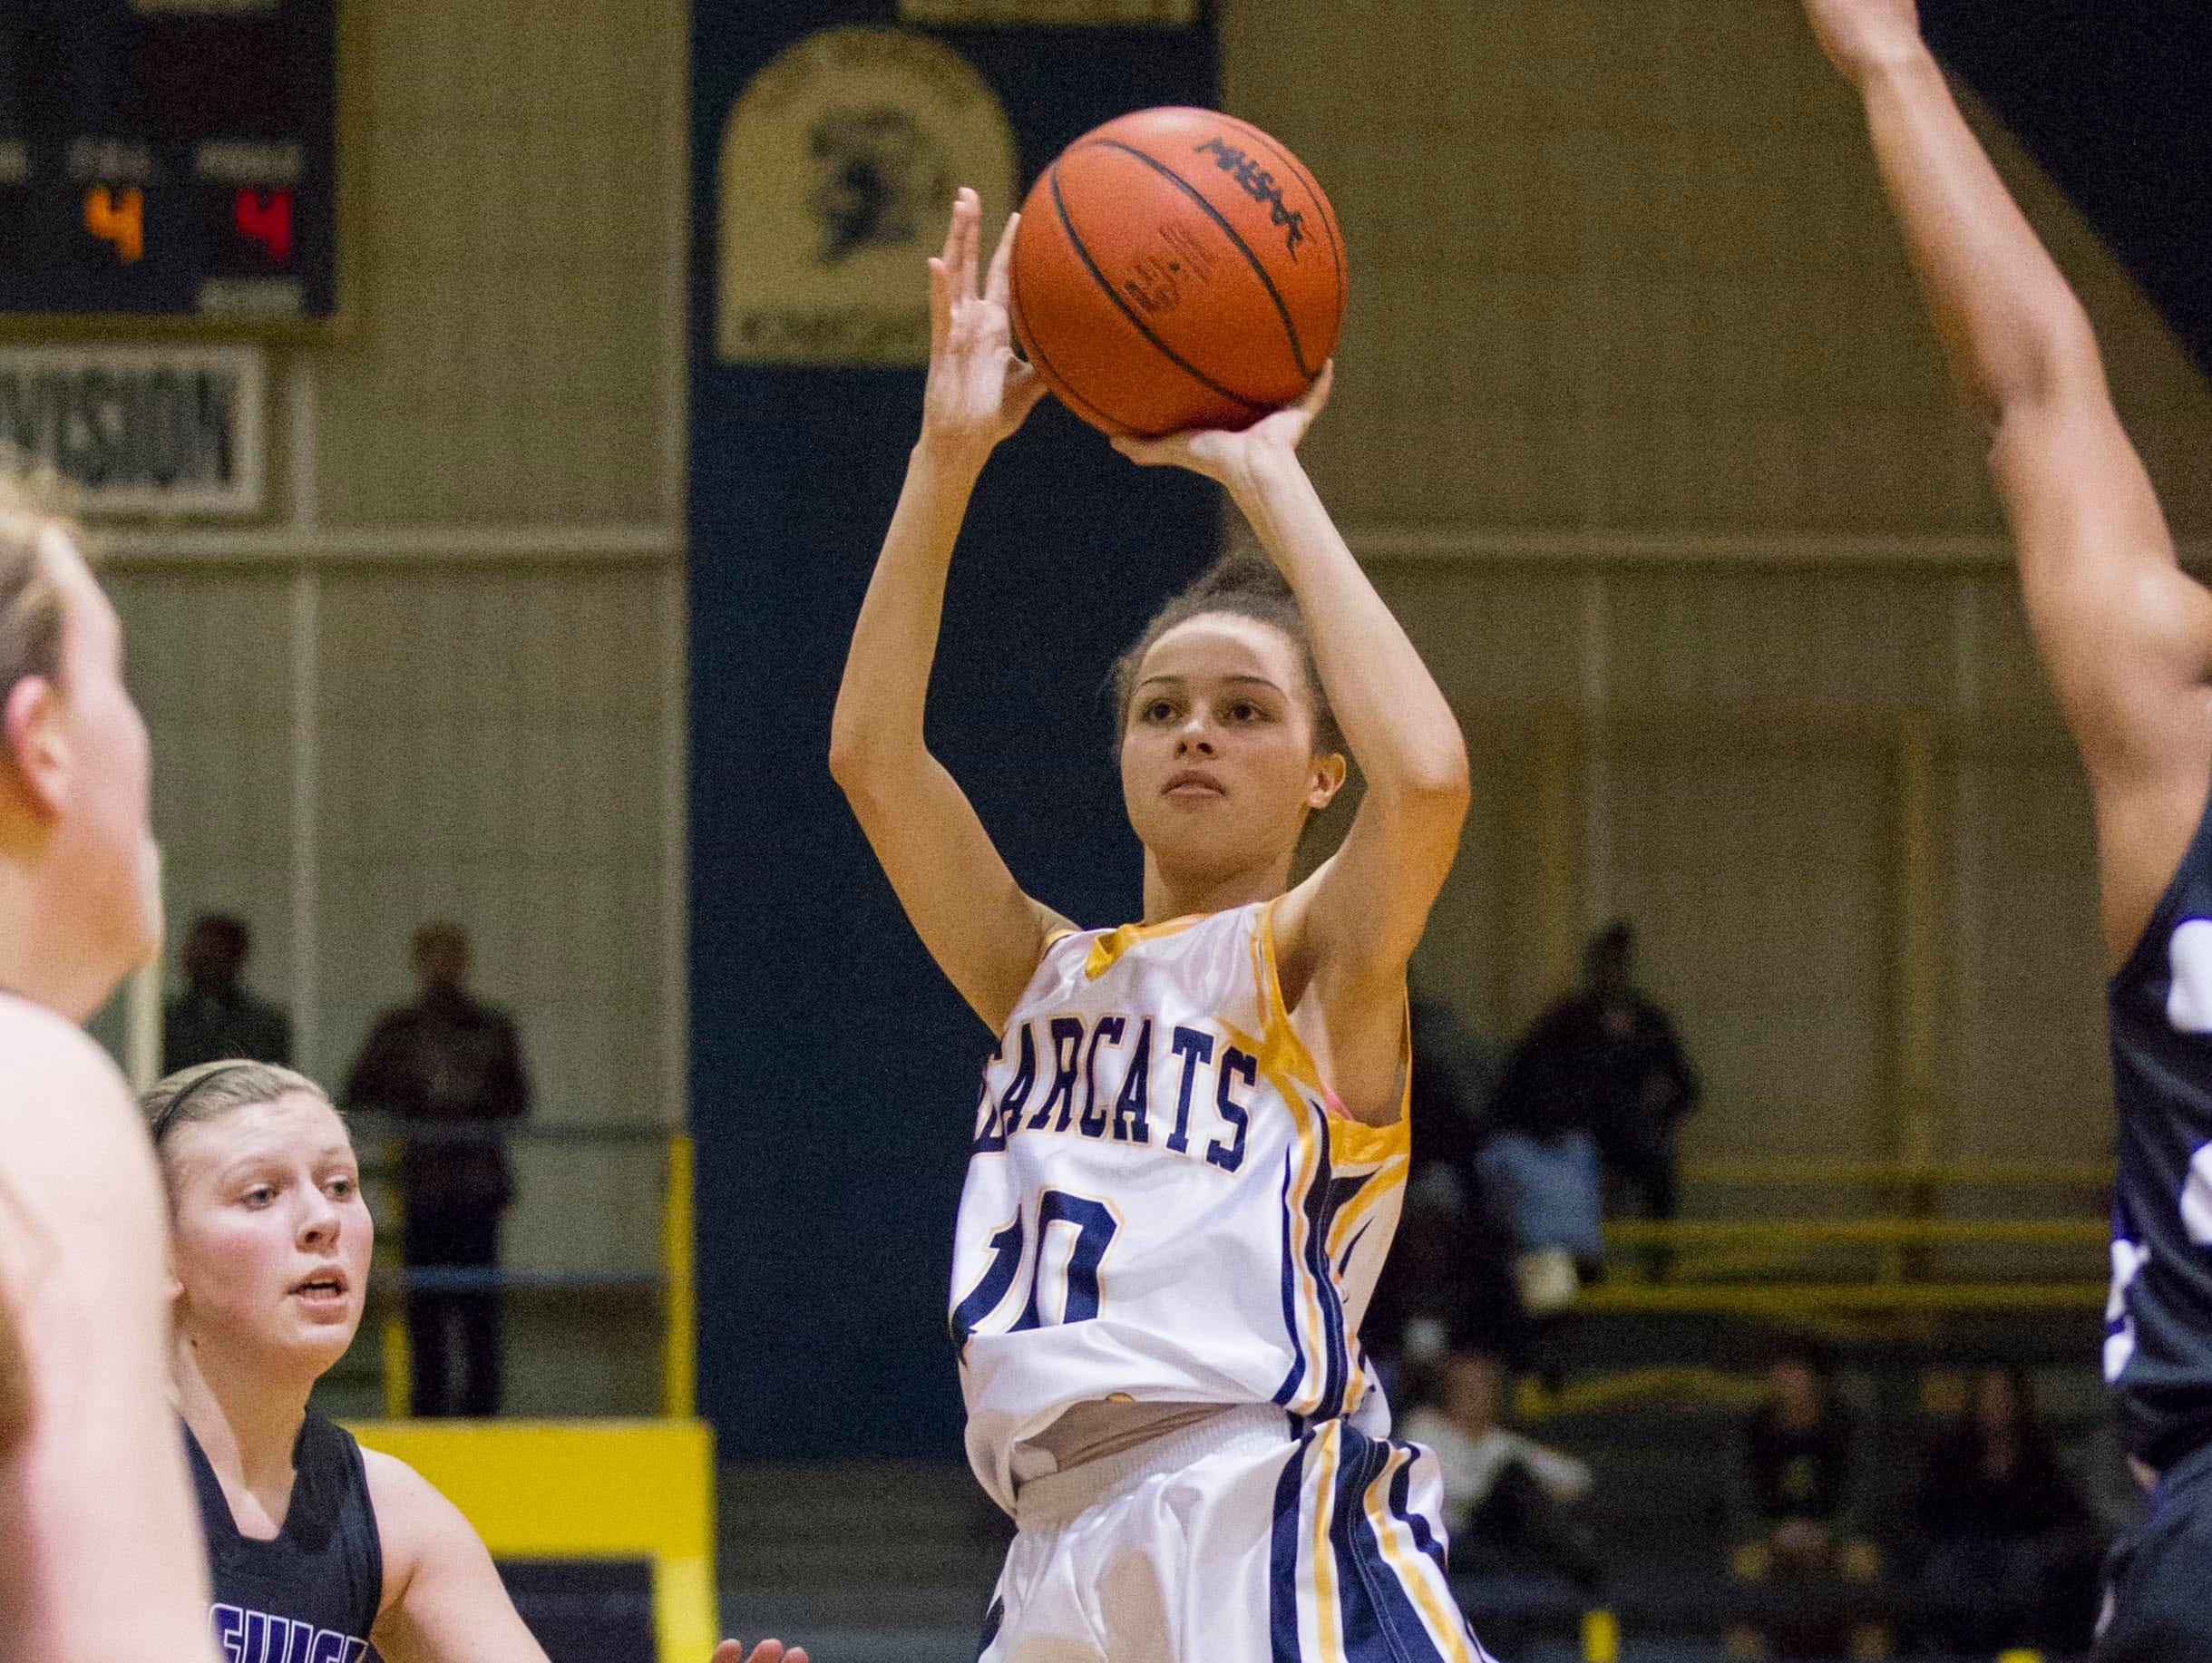 Former BCC standout Ka-Leah Ryan is currently a standout for KVCC